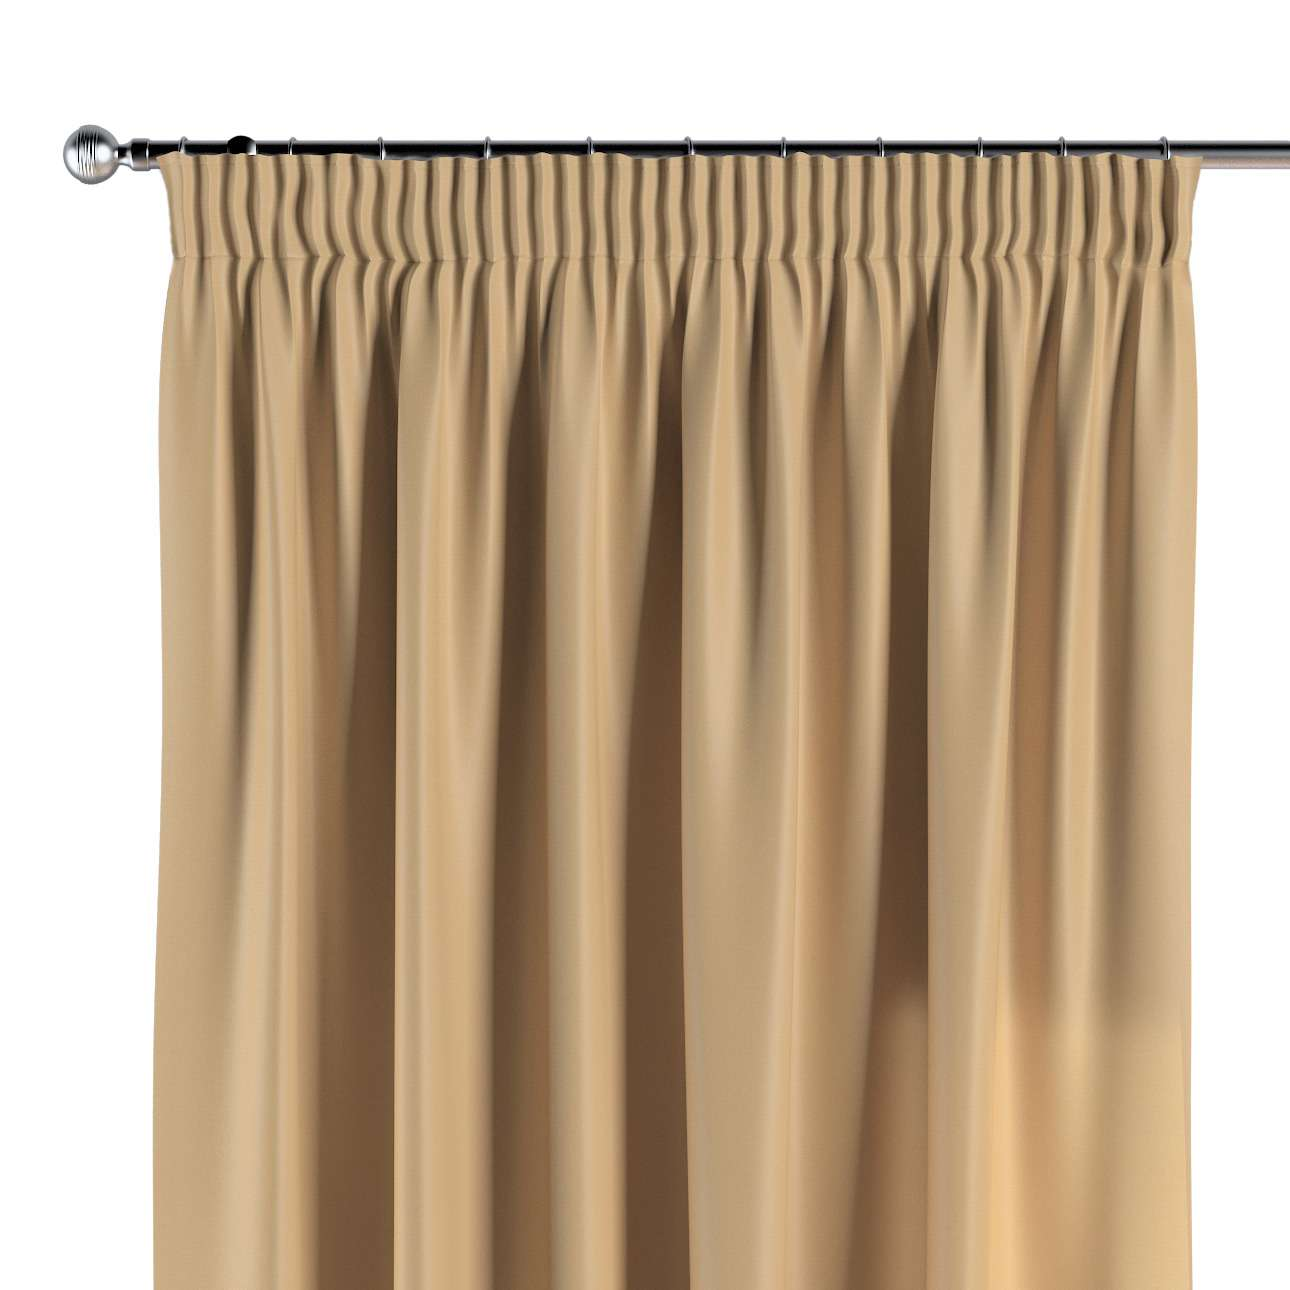 Pencil pleat curtains in collection Damasco, fabric: 141-75